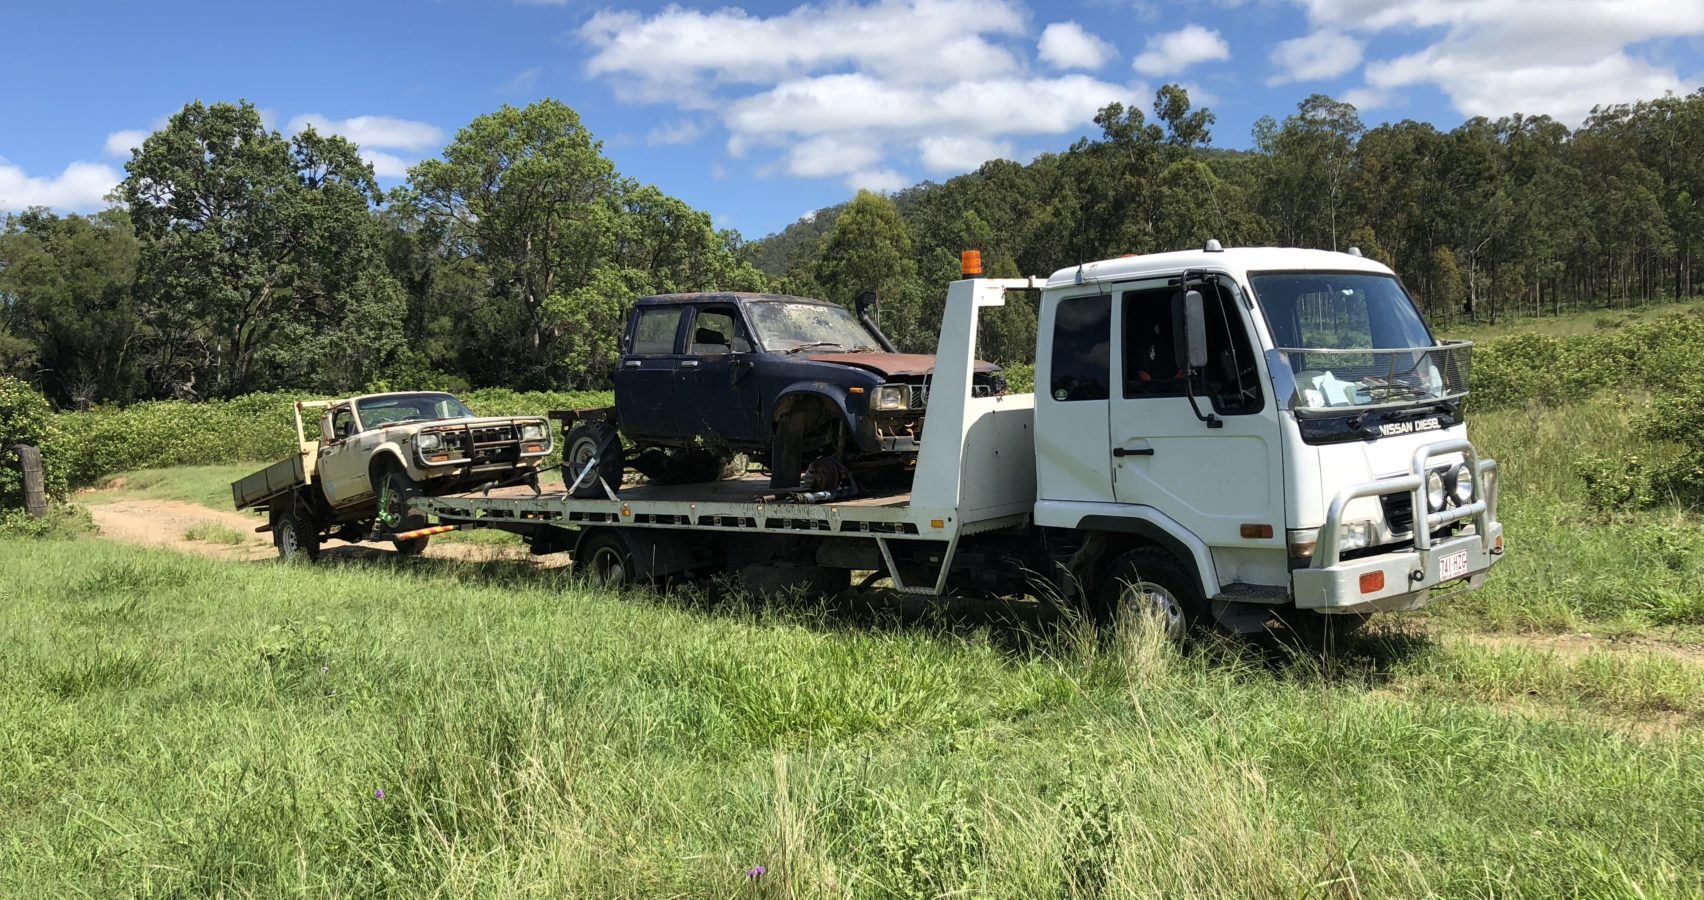 Sell your Unwanted Cars, Vans, Utes, 4wd and trucks to cash for cars Removal Brisbane, Sunshine Coast, Gold Coast, Logan, Bay side, Wynum, Toowoomba, Ipswich Caboolture, Gympie. When it comes to cash for cars and car removal services cash for cars is the best choice of car removal and cash for cars right across South East QLD.